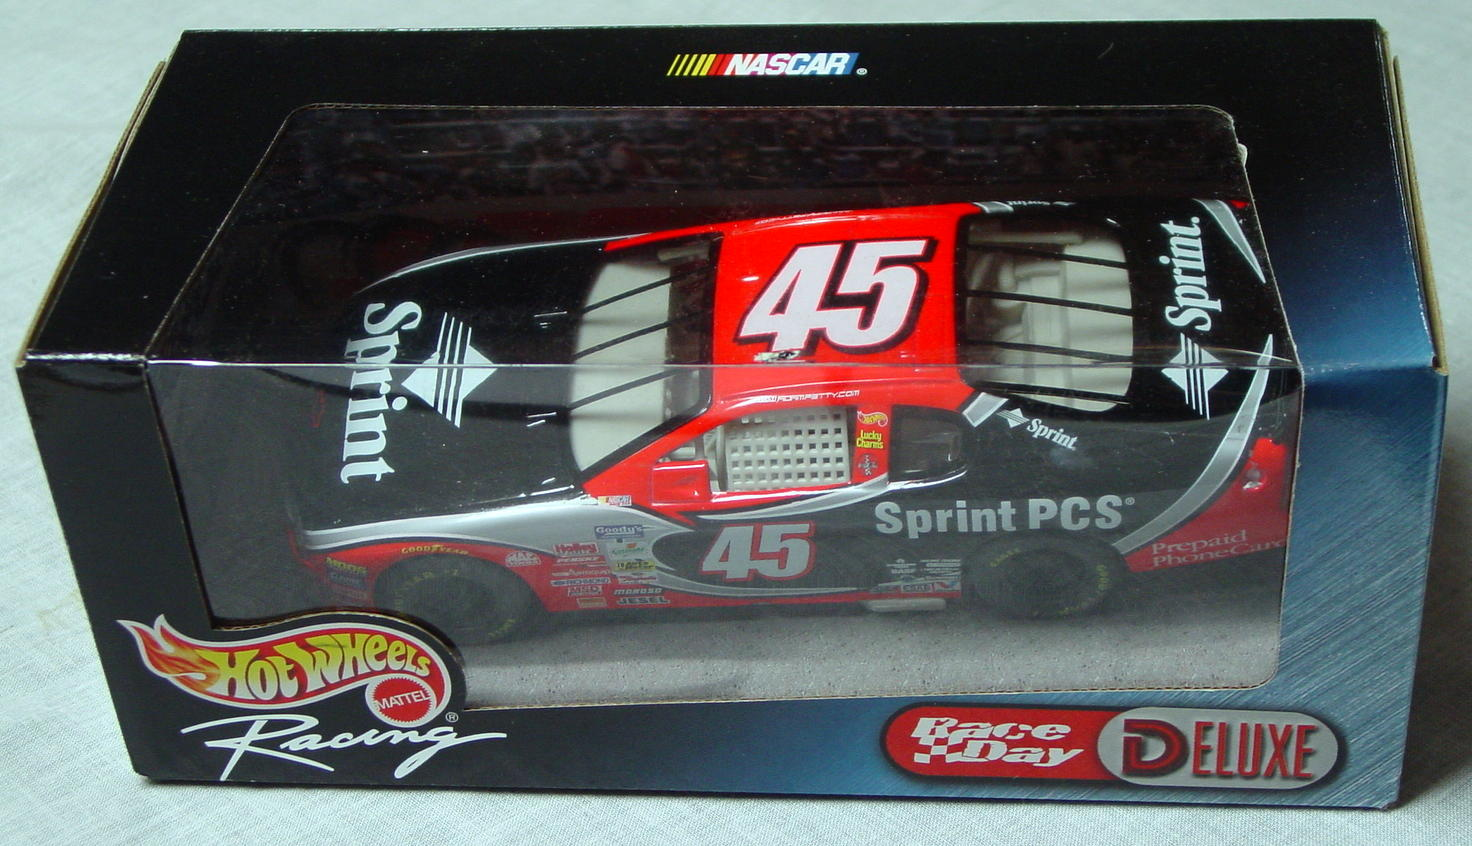 1_24 Scale - HW Racing Spint Car Black and Red 45